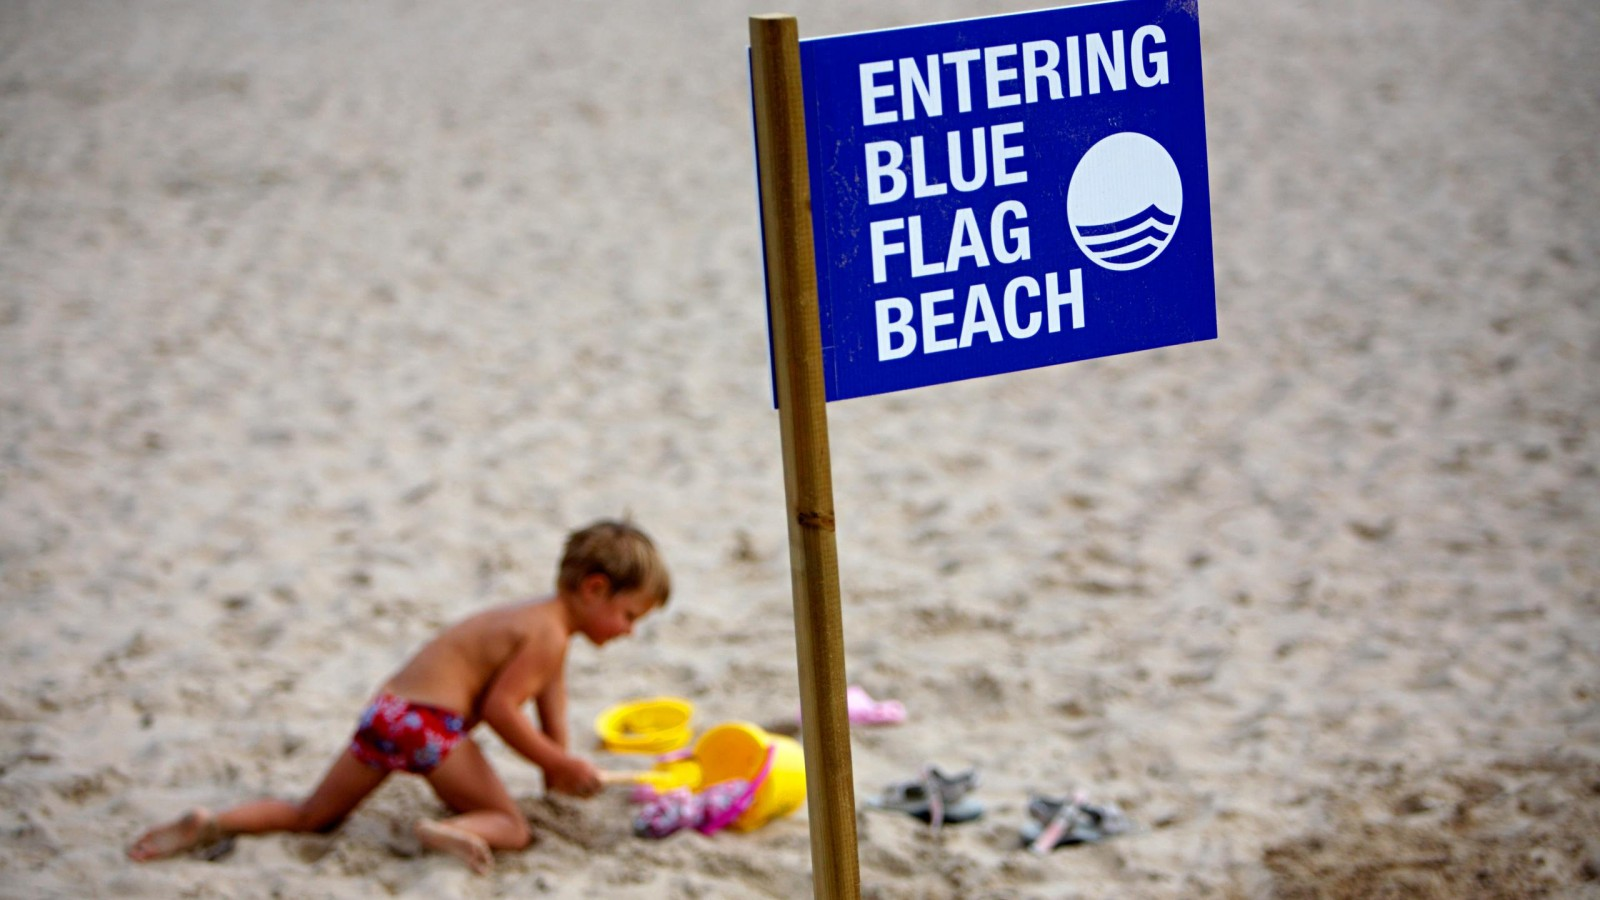 The most popular beaches with the Blue Flag